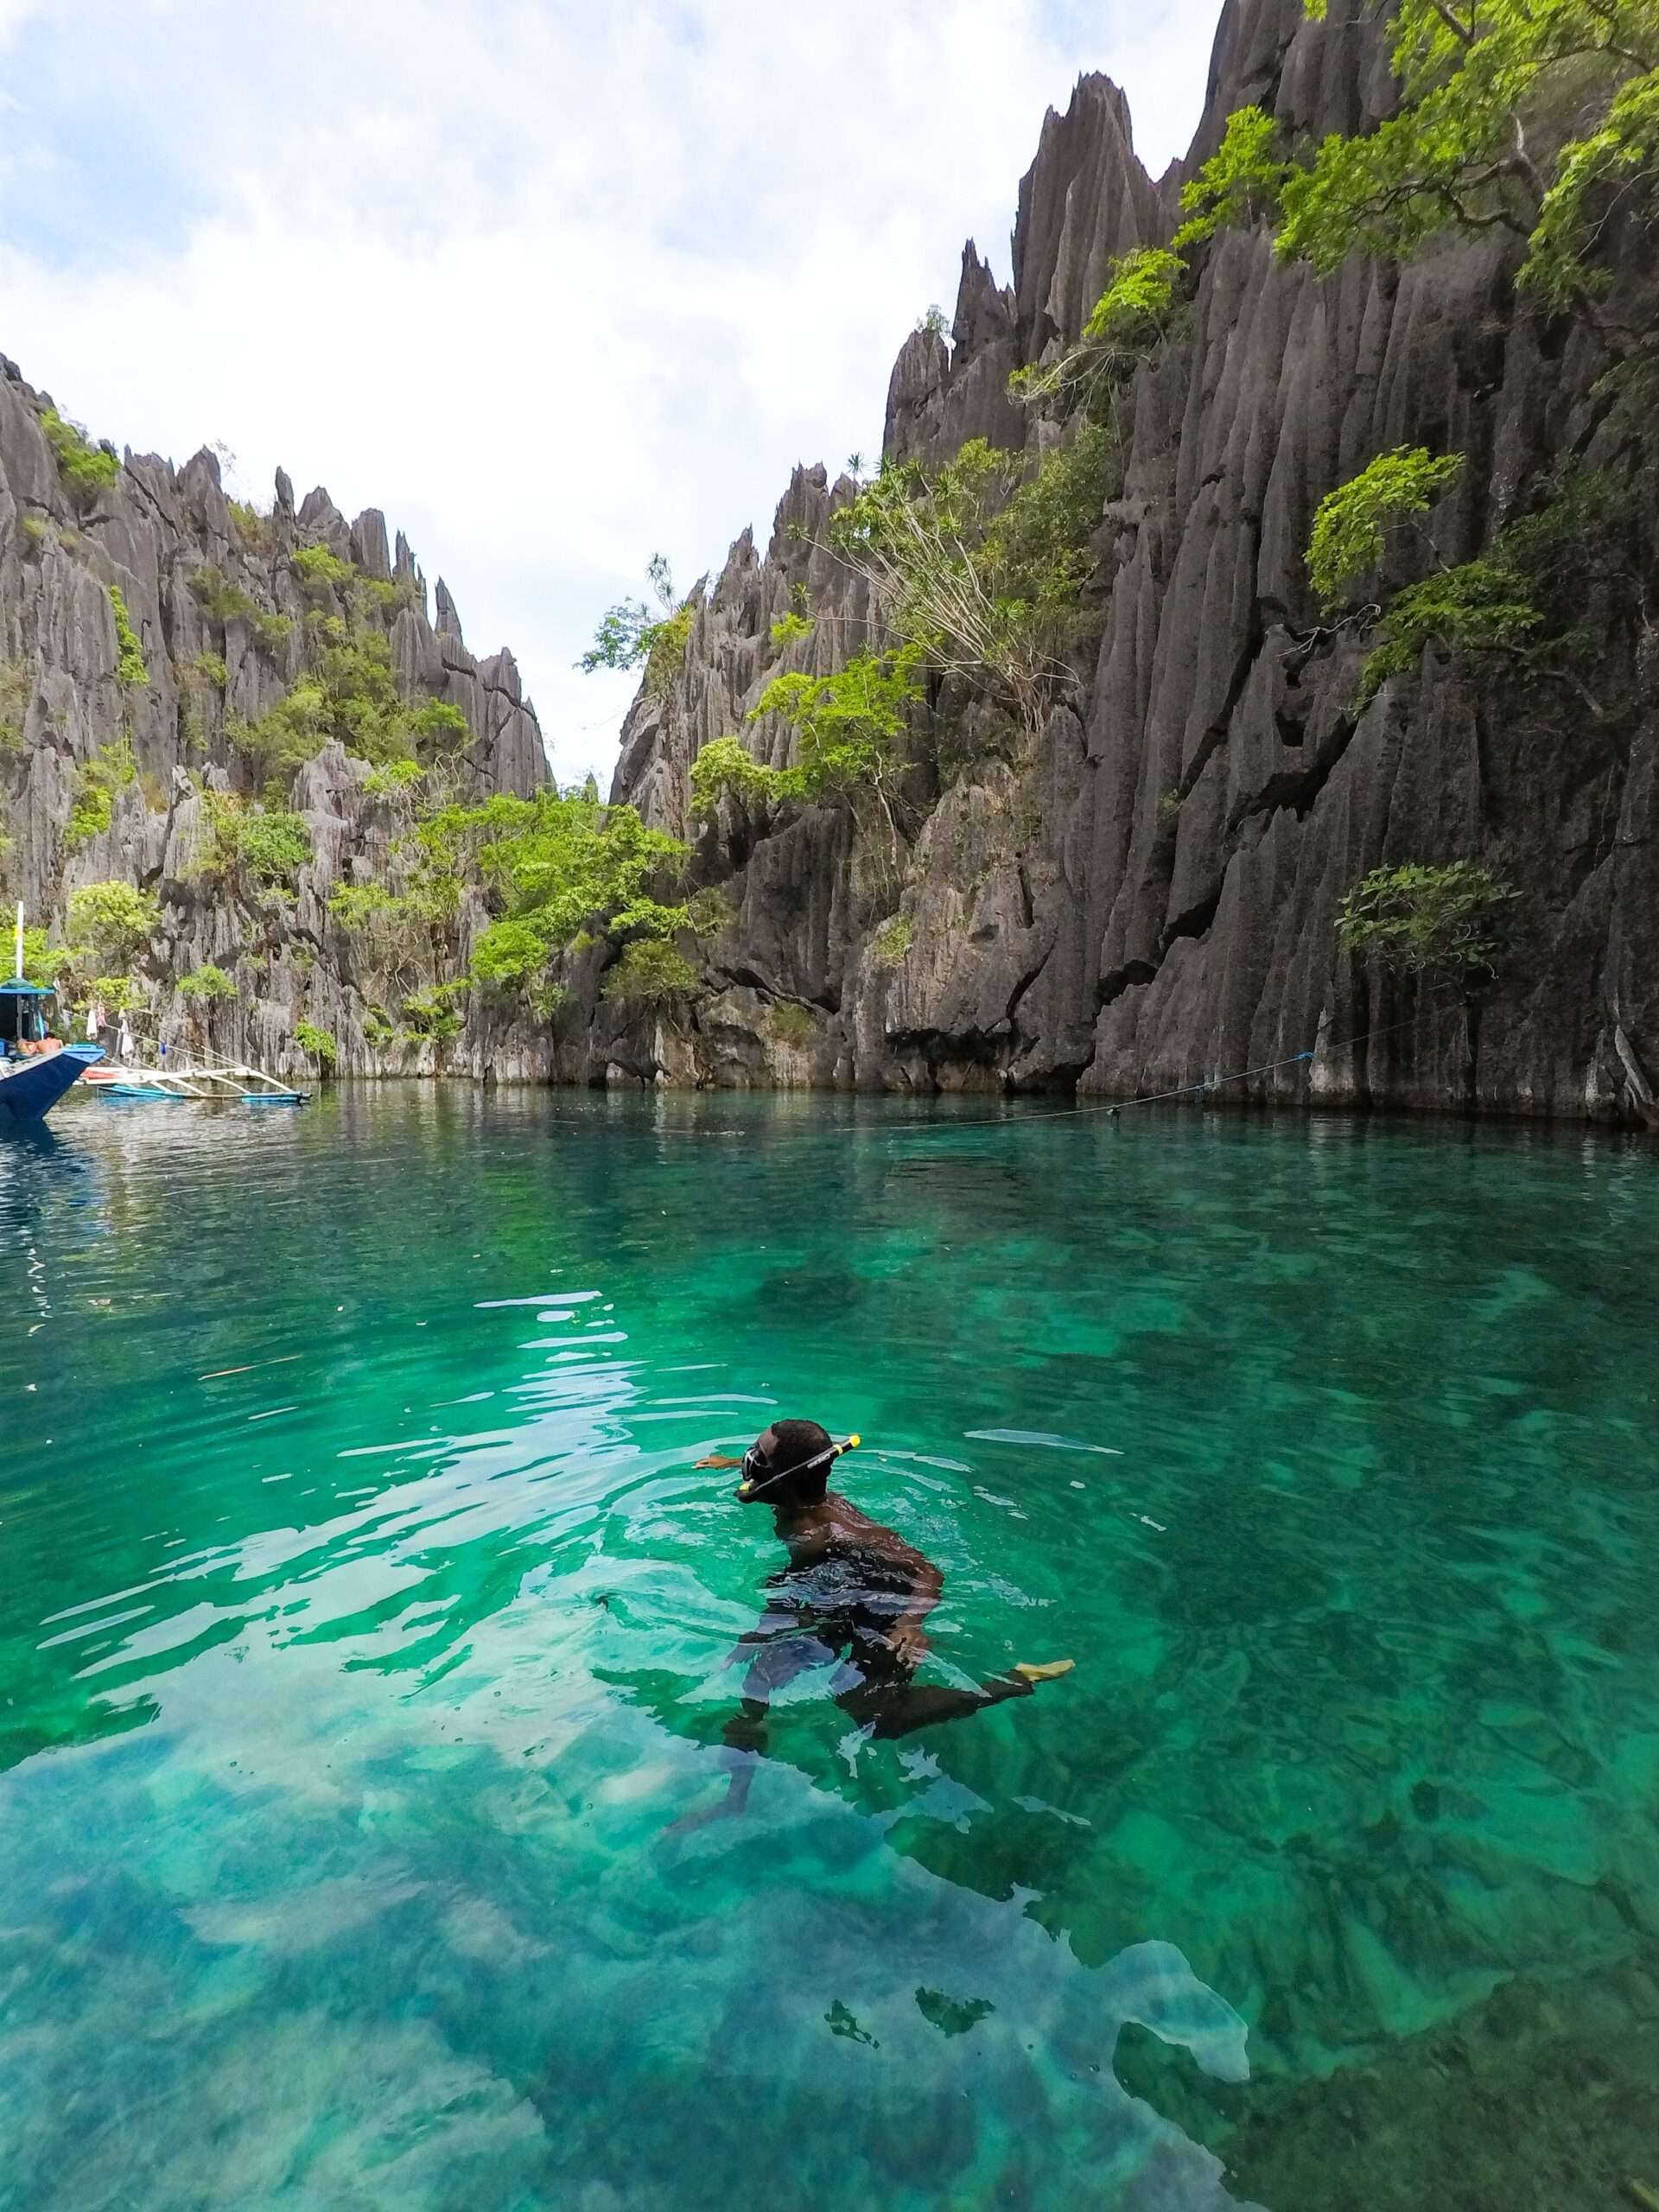 a man treads water in turquoise water surrounded by karst rocks, island hopping in coron